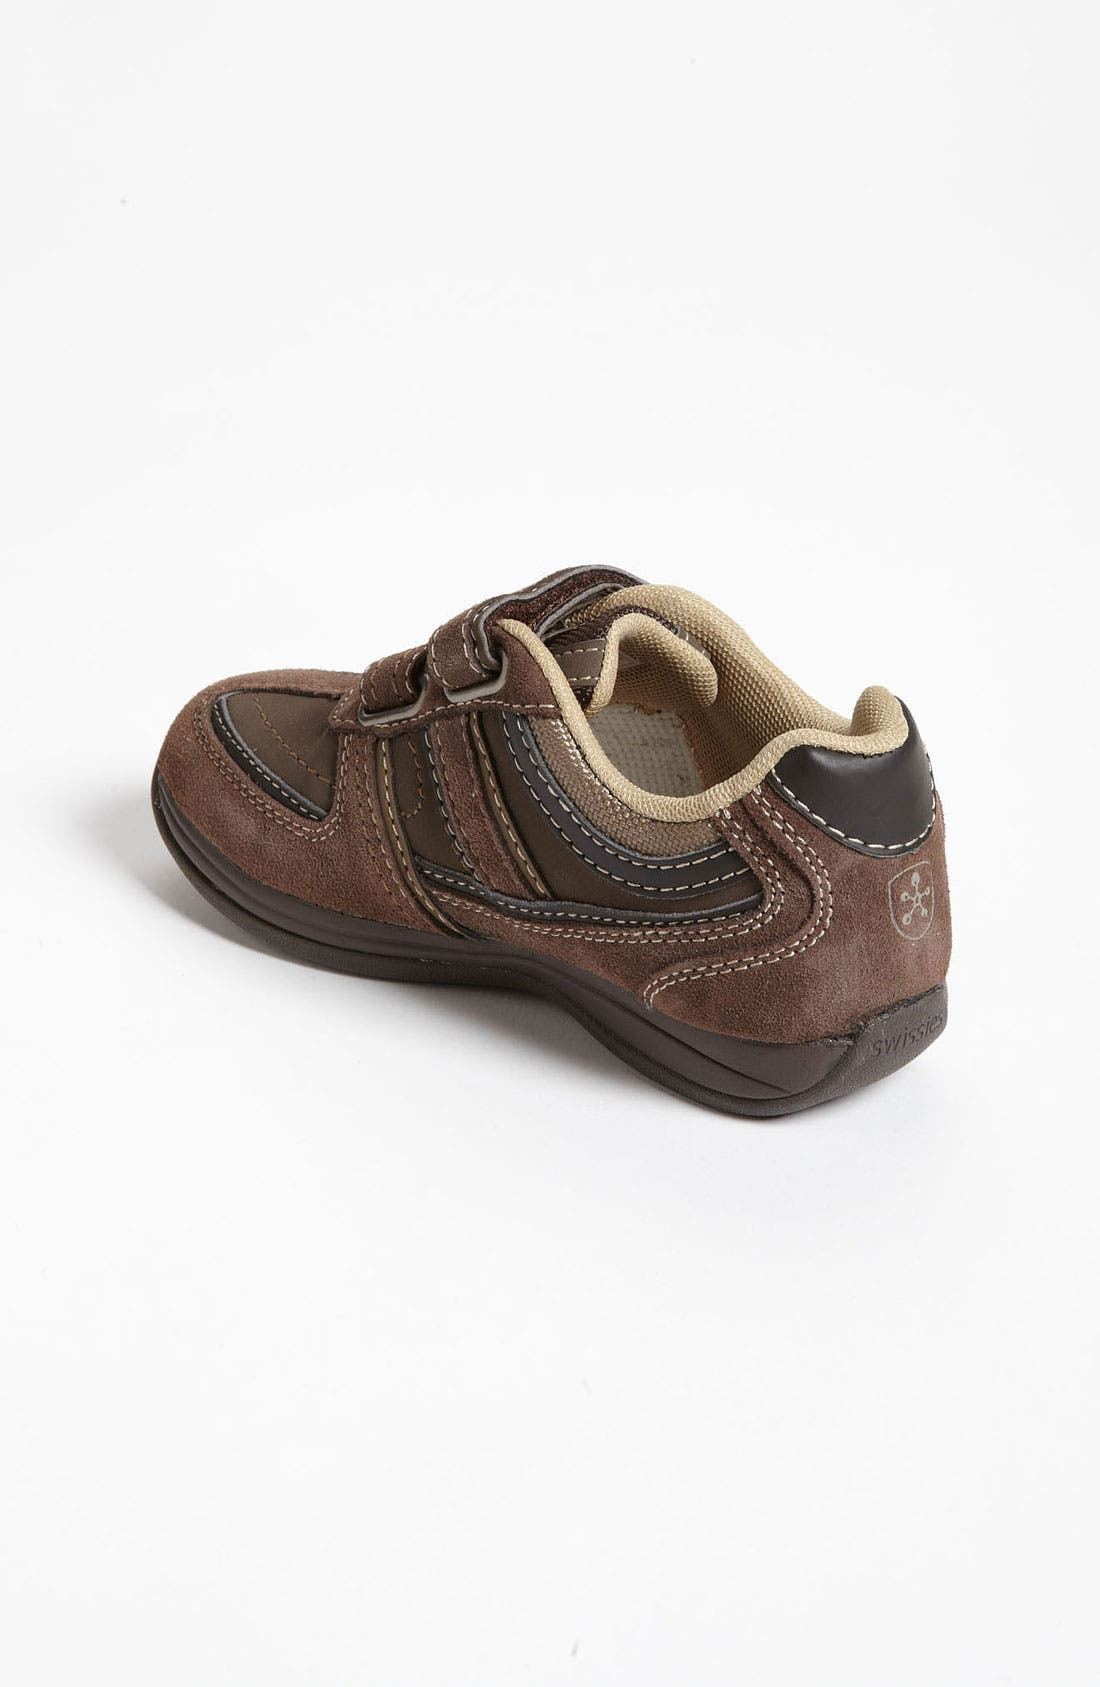 Alternate Image 2  - Swissies 'Derek' Sneaker (Toddler, Little Kid & Big Kid)